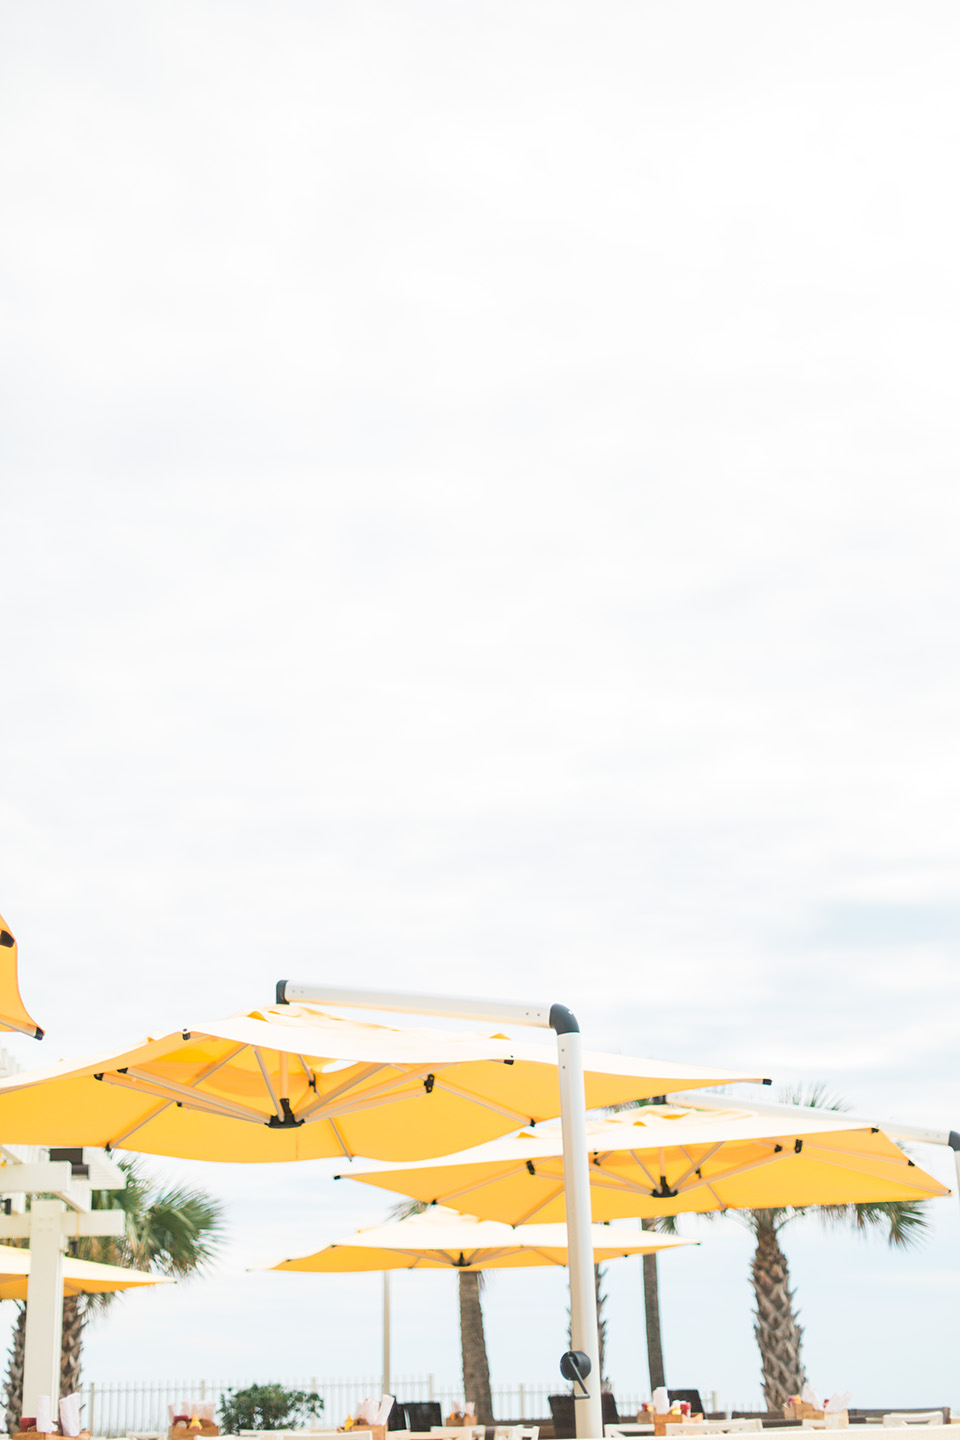 Image of bright yellow beach umbrellas at the Omni Amelia Island Plantation Resort.